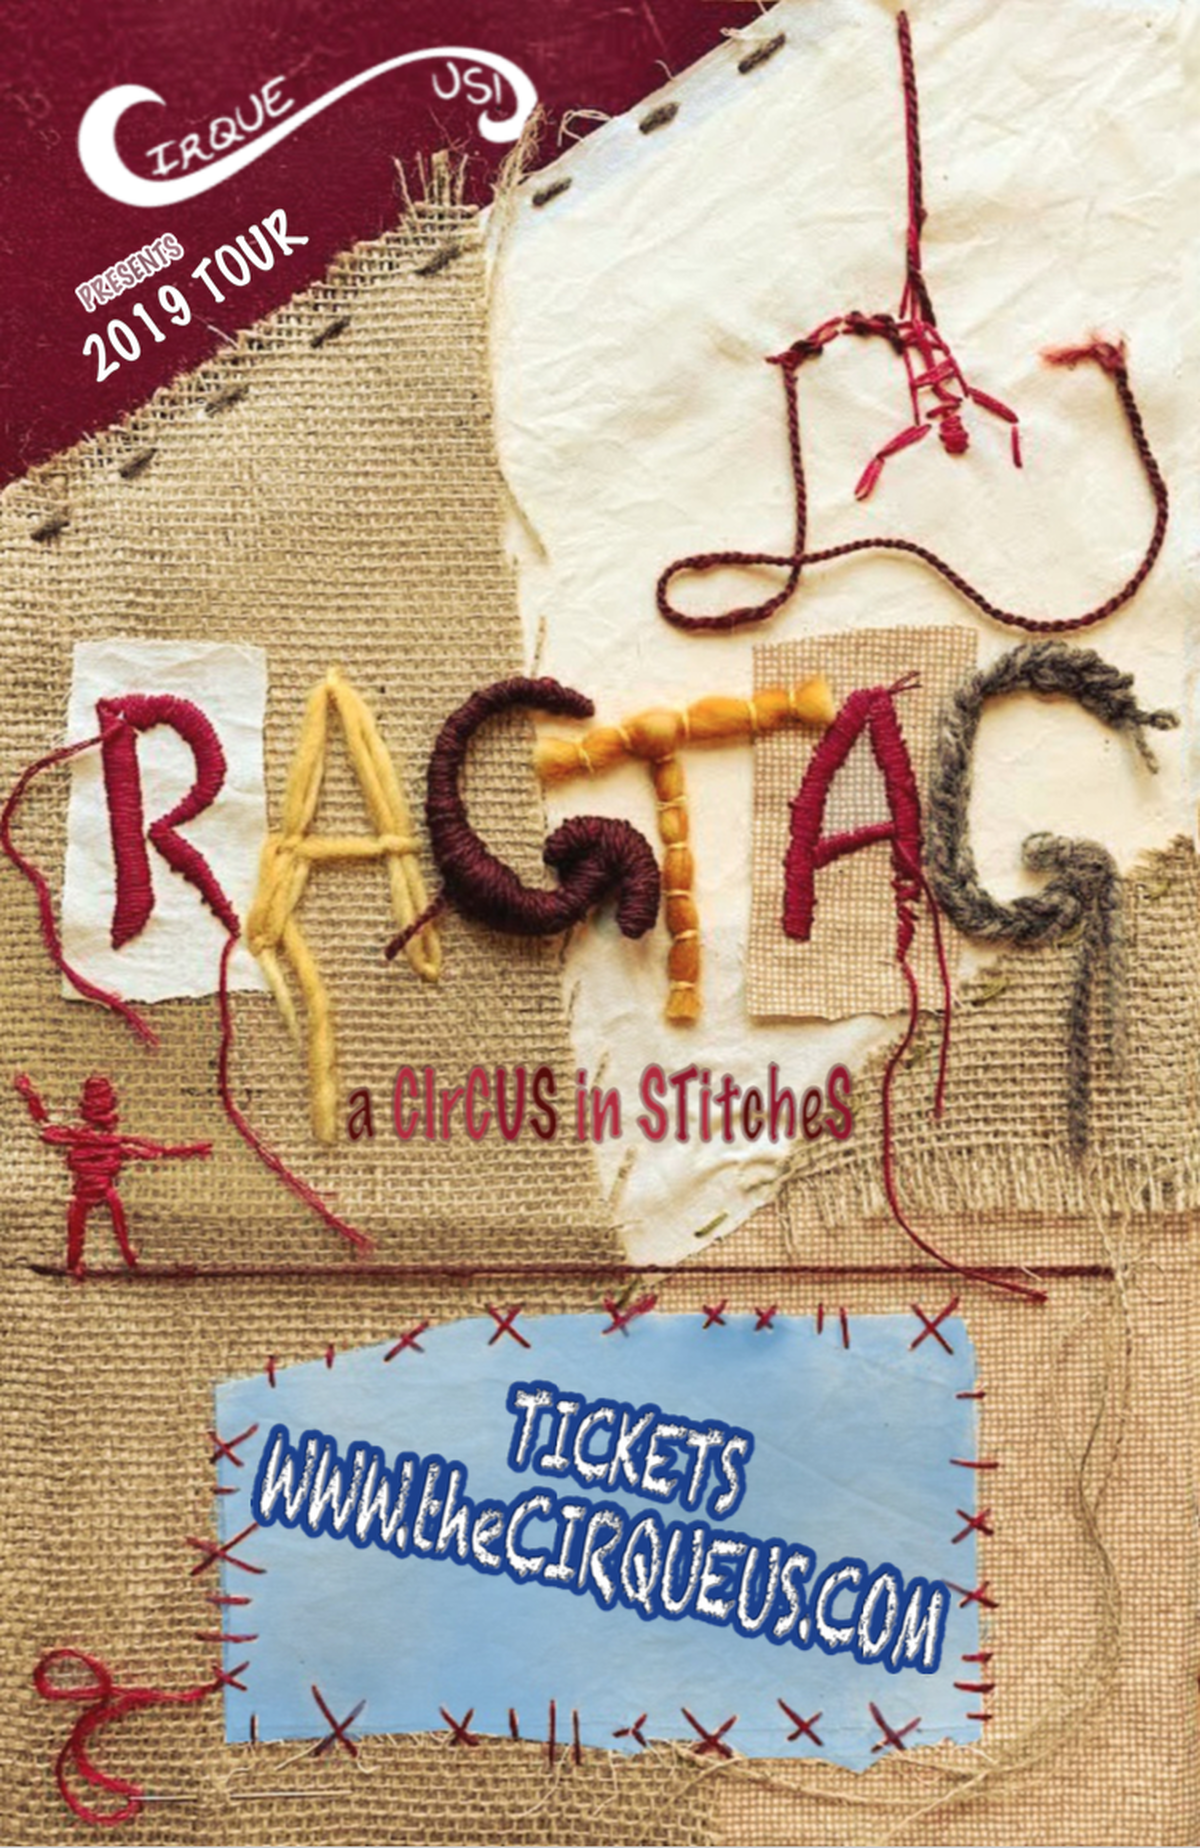 RagTag: a CirCus in StitCheS - Circus Events - CircusTalk